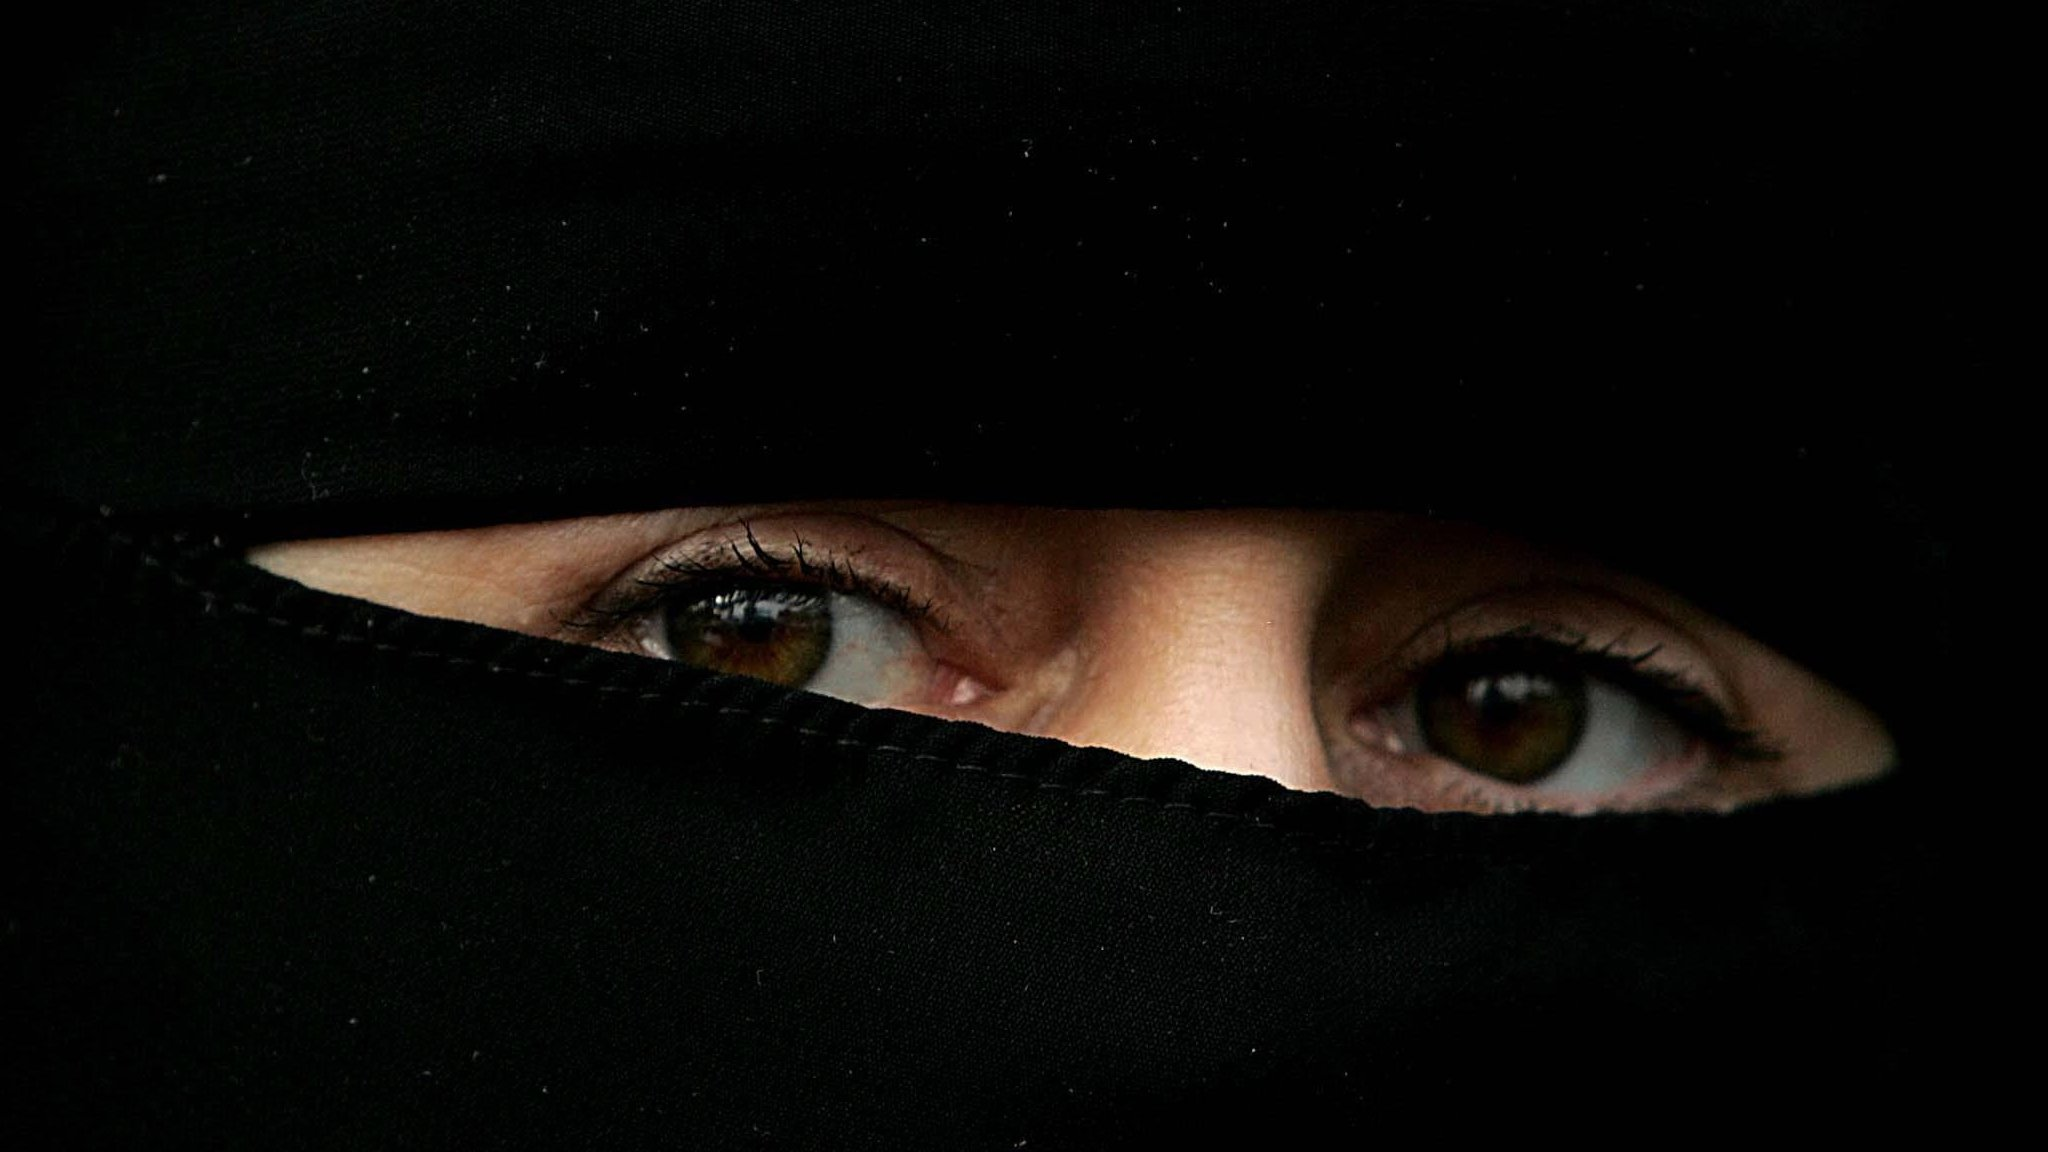 Burka comments 'racist' - Wales' first minister